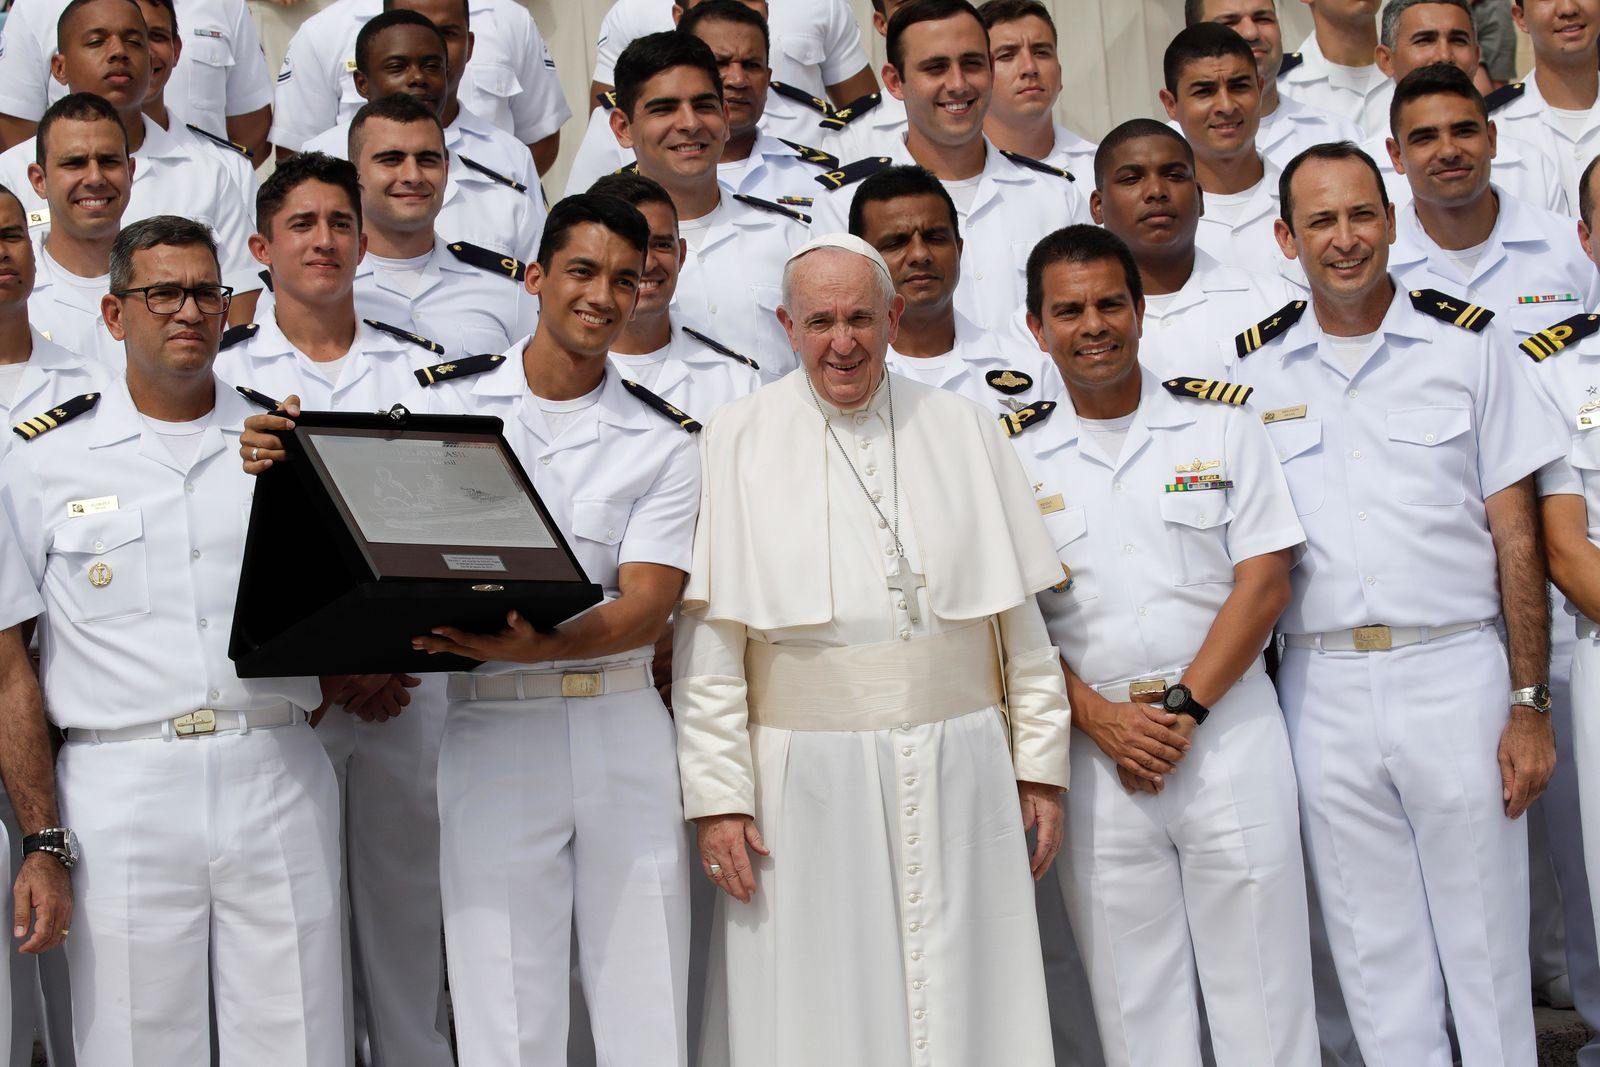 FILE – Pope Francis poses for a family picture with Brazilian Navy personnel during his weekly general audience, in St. Peter's Square at the Vatican, Wednesday, Aug. 28, 2019. (AP Photo/Alessandra Tarantino)